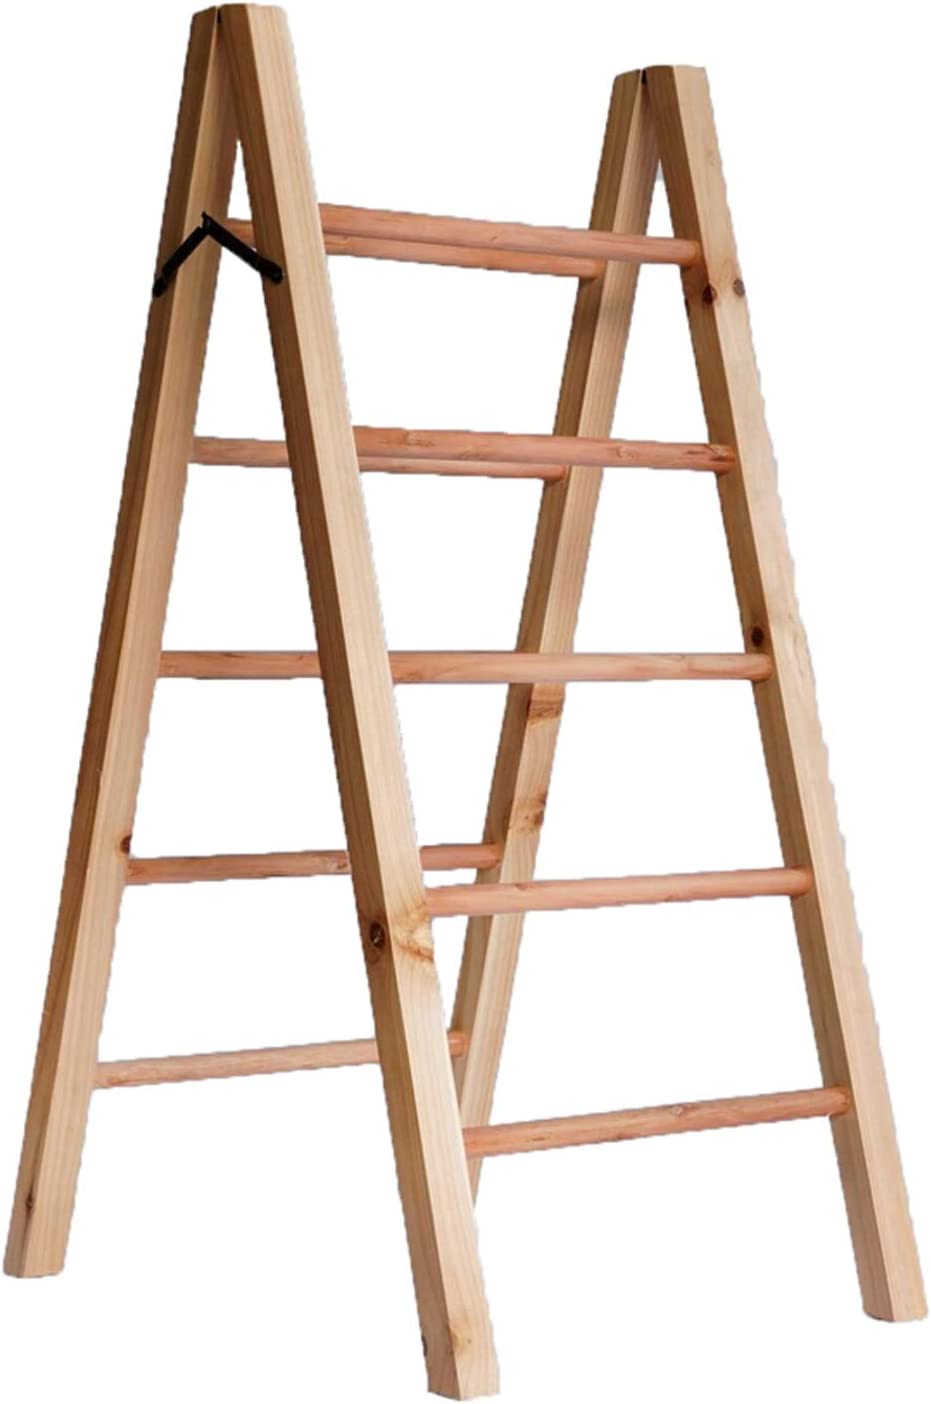 TX USA トラスト Corporation Tabletop 送料無料お手入れ要らず Towl Ladder Bars Bro Wooden with 4 -